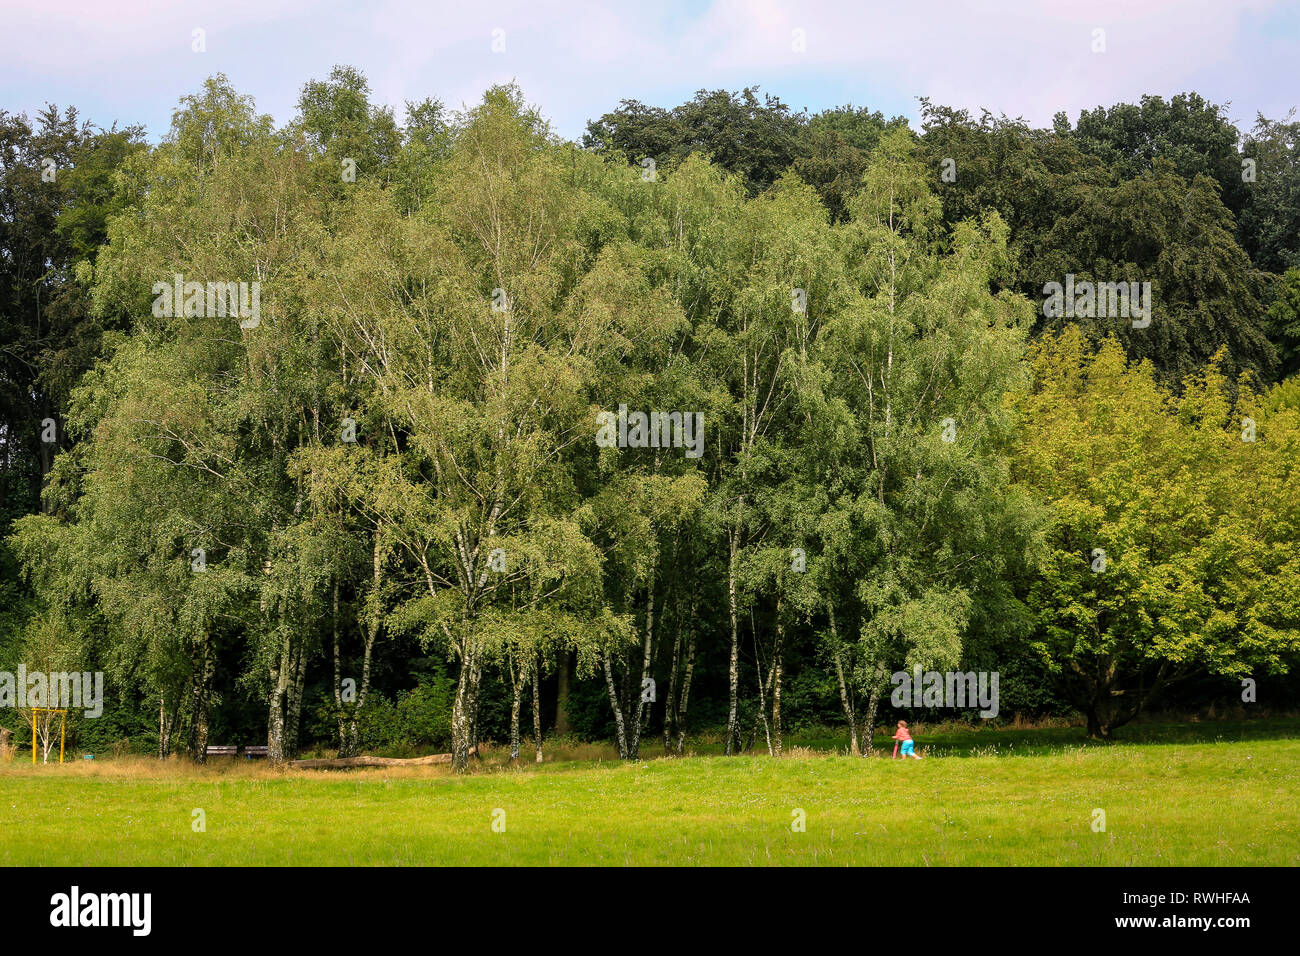 Essen, North Rhine-Westphalia, Ruhr area, Germany - The Hallopark between Stoppenberg and Schonnebeck is one of the oldest green areas in Essen, a chi - Stock Image